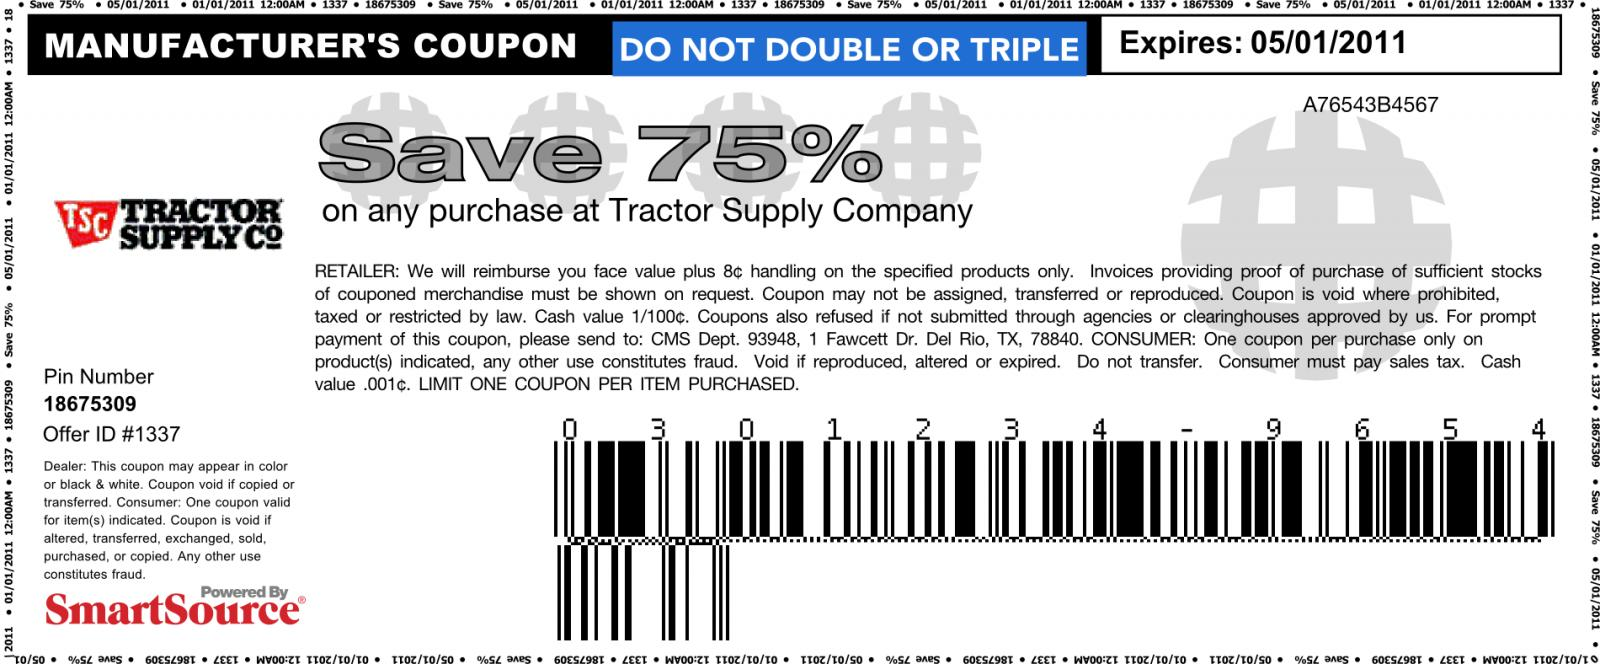 Printable Retail Tractor Supply Coupons Printable Coupons